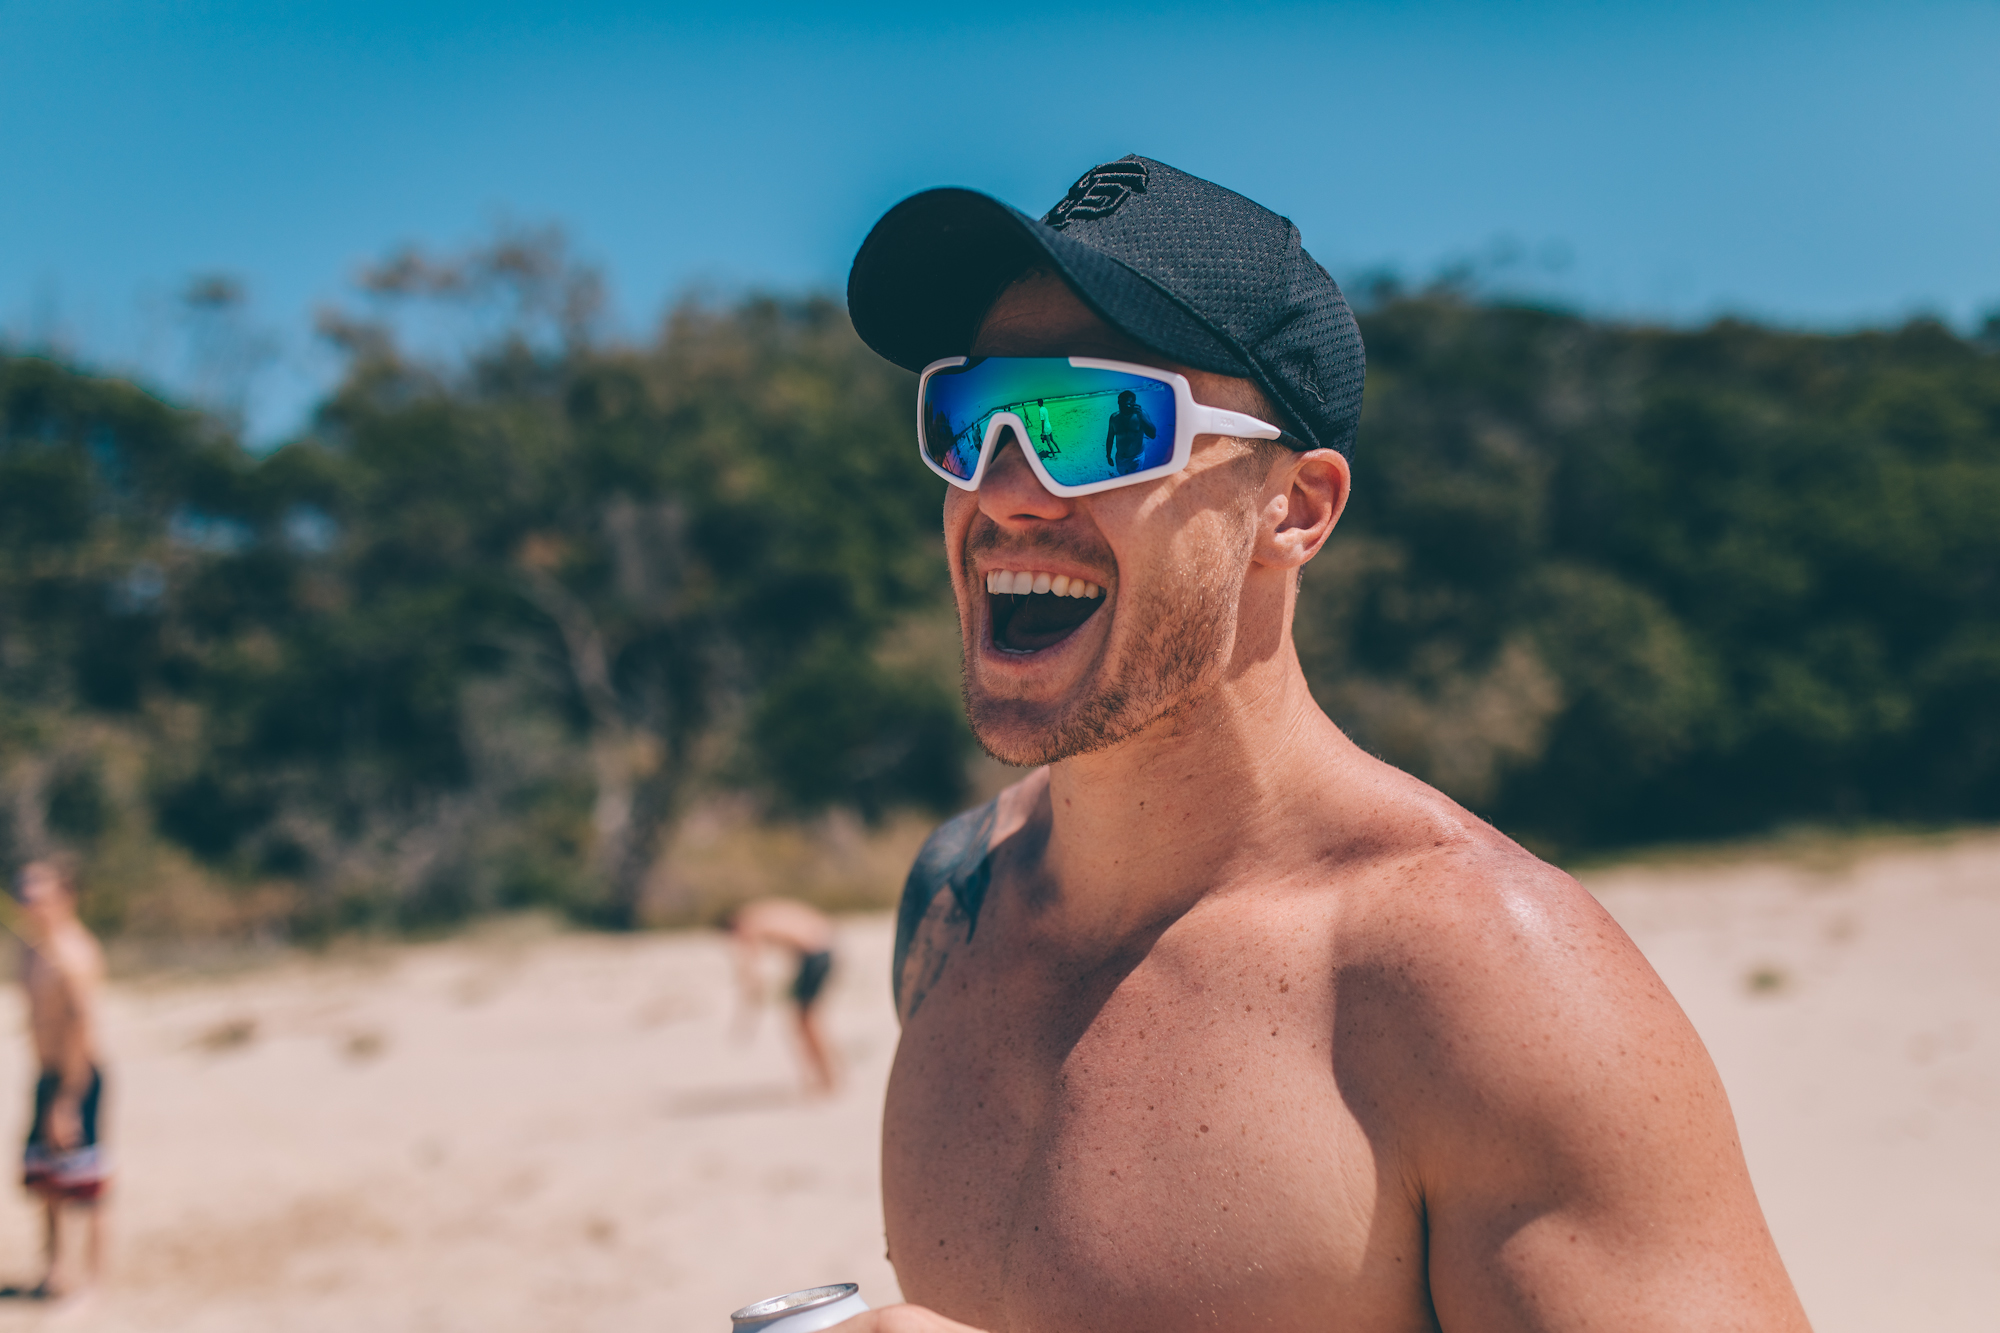 Soda Shades of Summer Eyewear Sunglasses Welcome to Summer Campaign Polarized Australia-132